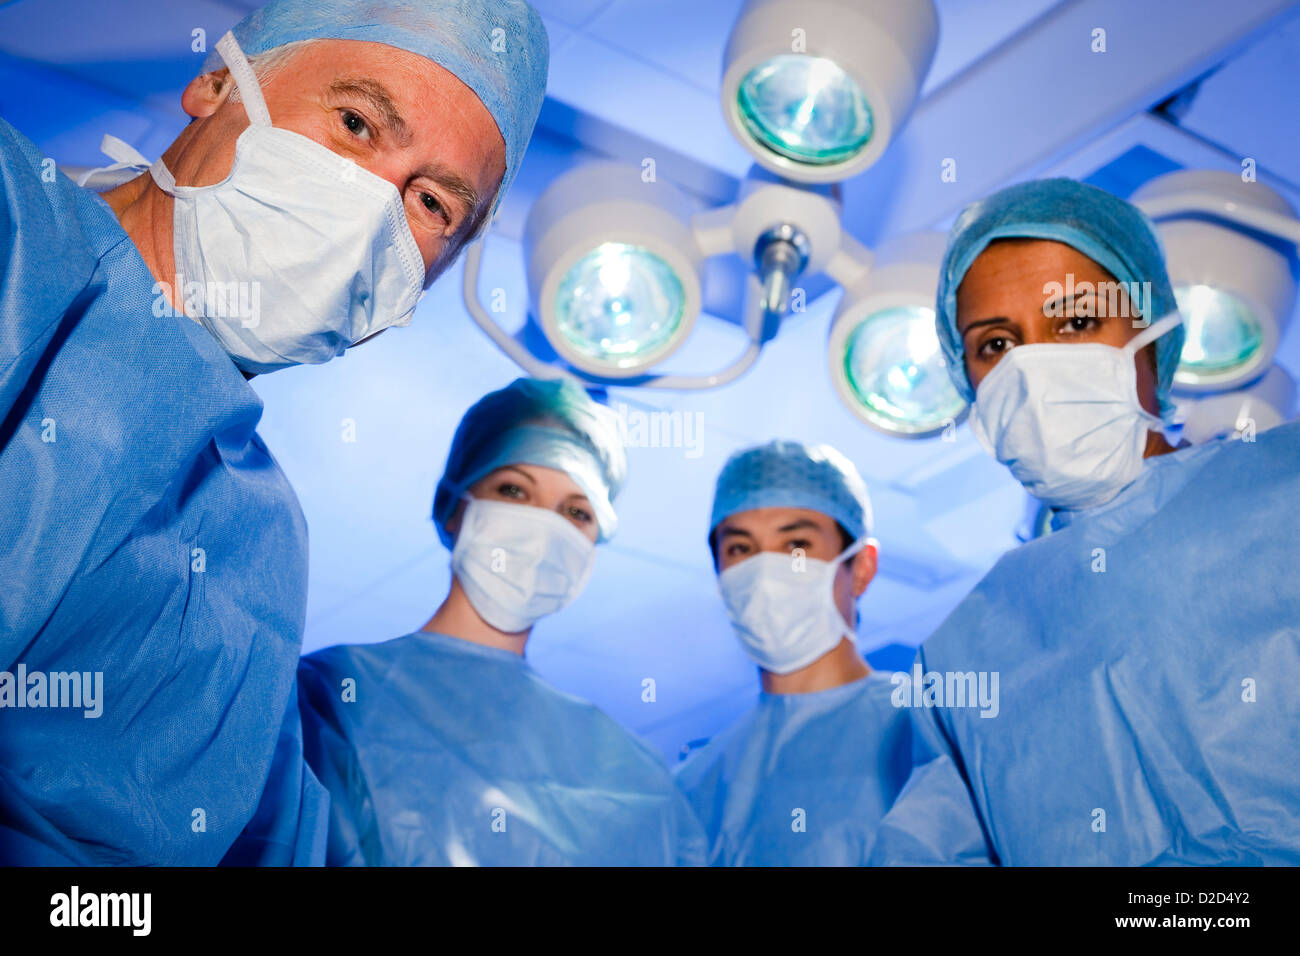 MODEL RELEASED Surgical team - Stock Image